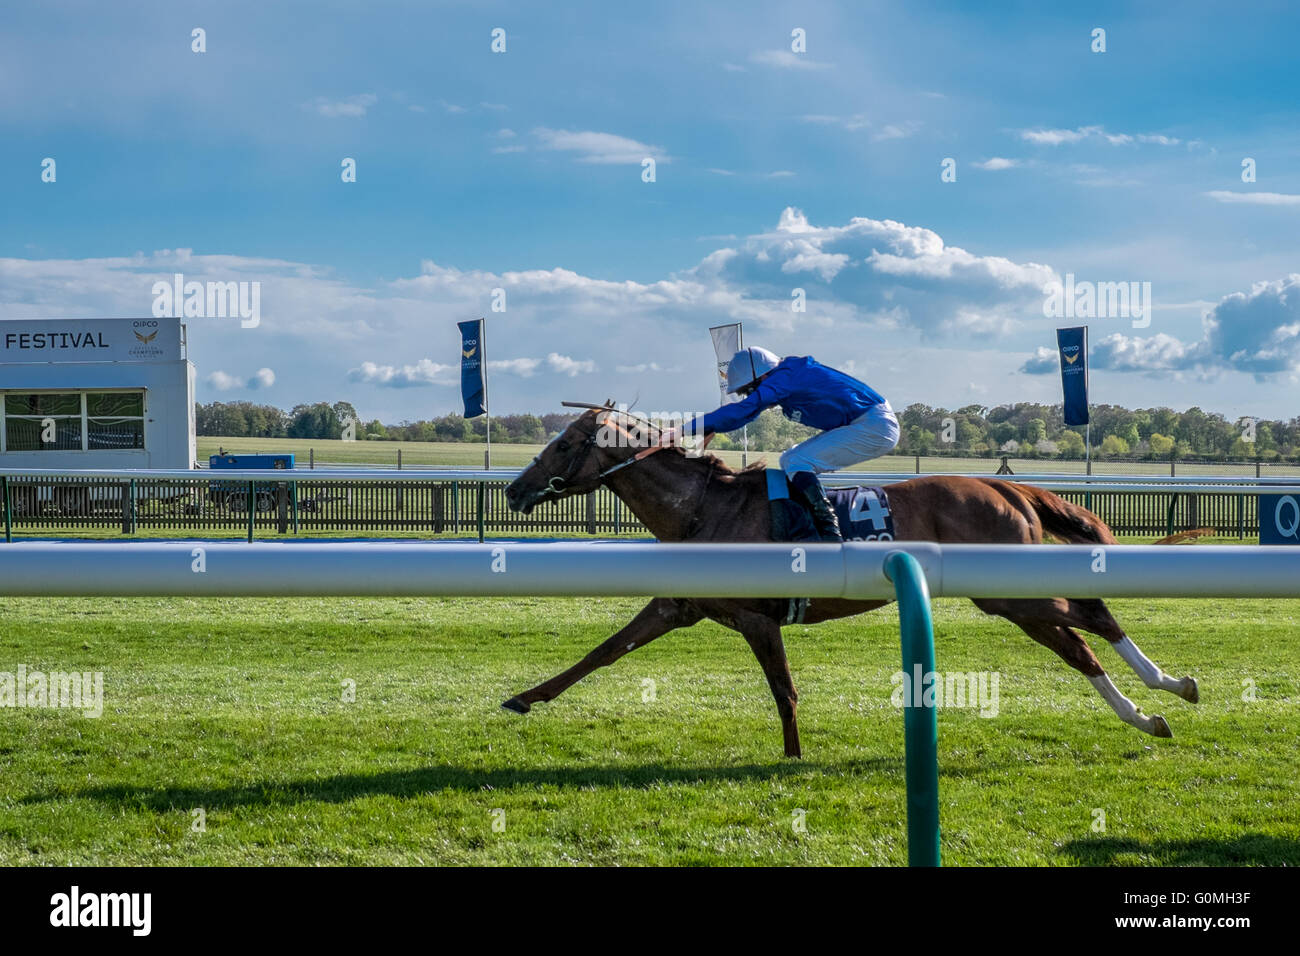 The winning horse Hawkbill from the QIPCO 2000 guineas race at the Newmarket Racecourses horses racing on a sunny Stock Photo